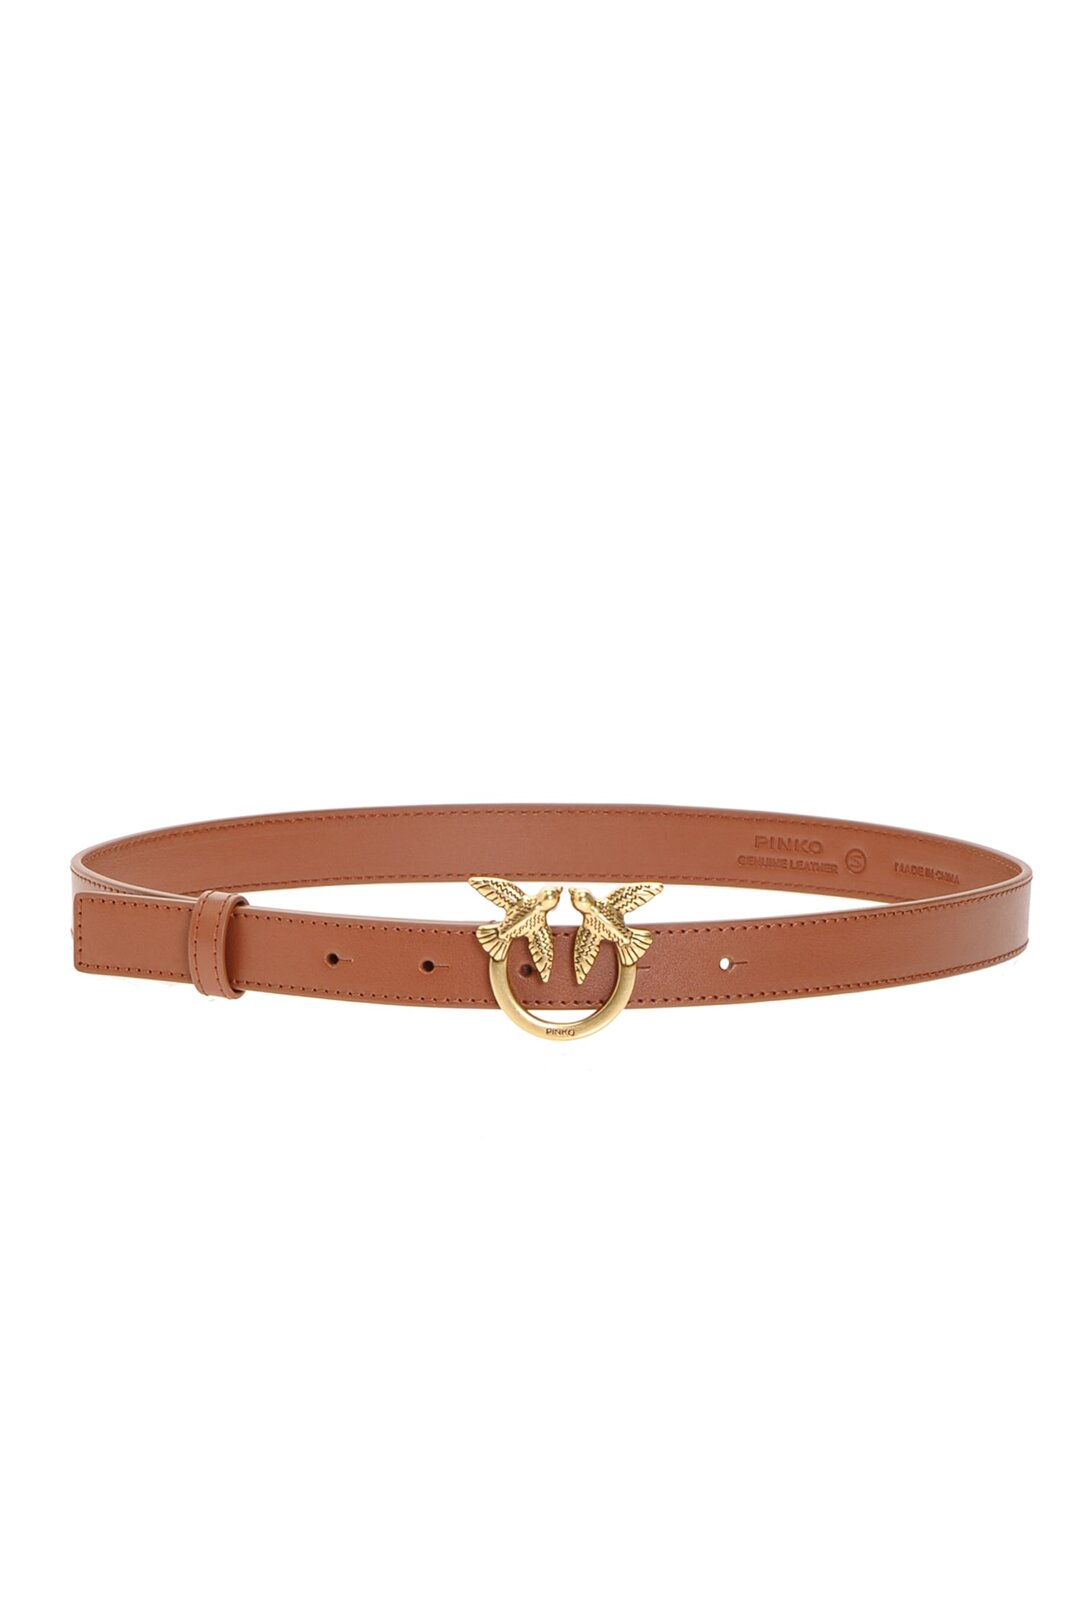 Low Belt With Love Birds Buckle - Pinko